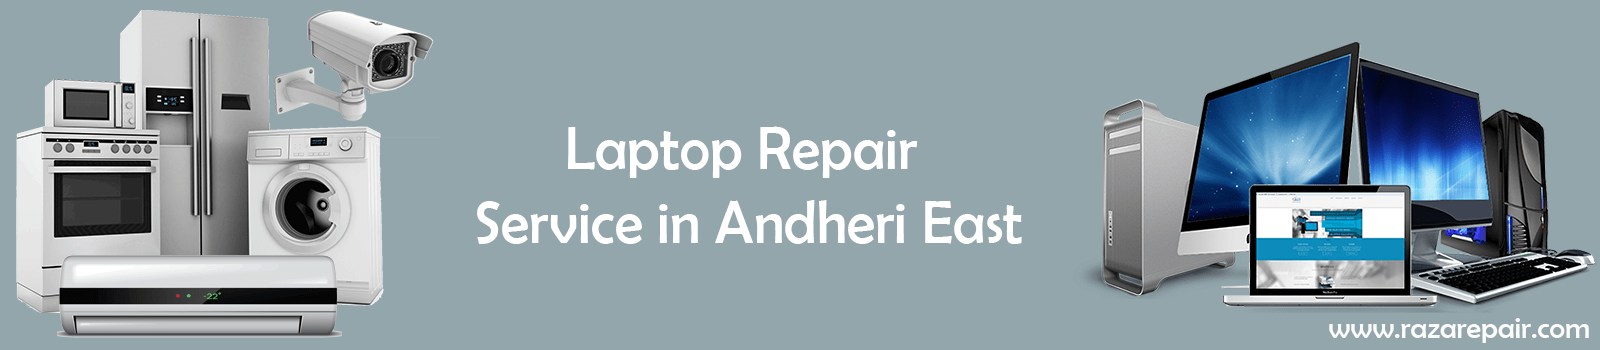 Laptop Repair Service in Andheri East | Call Now 8655112626